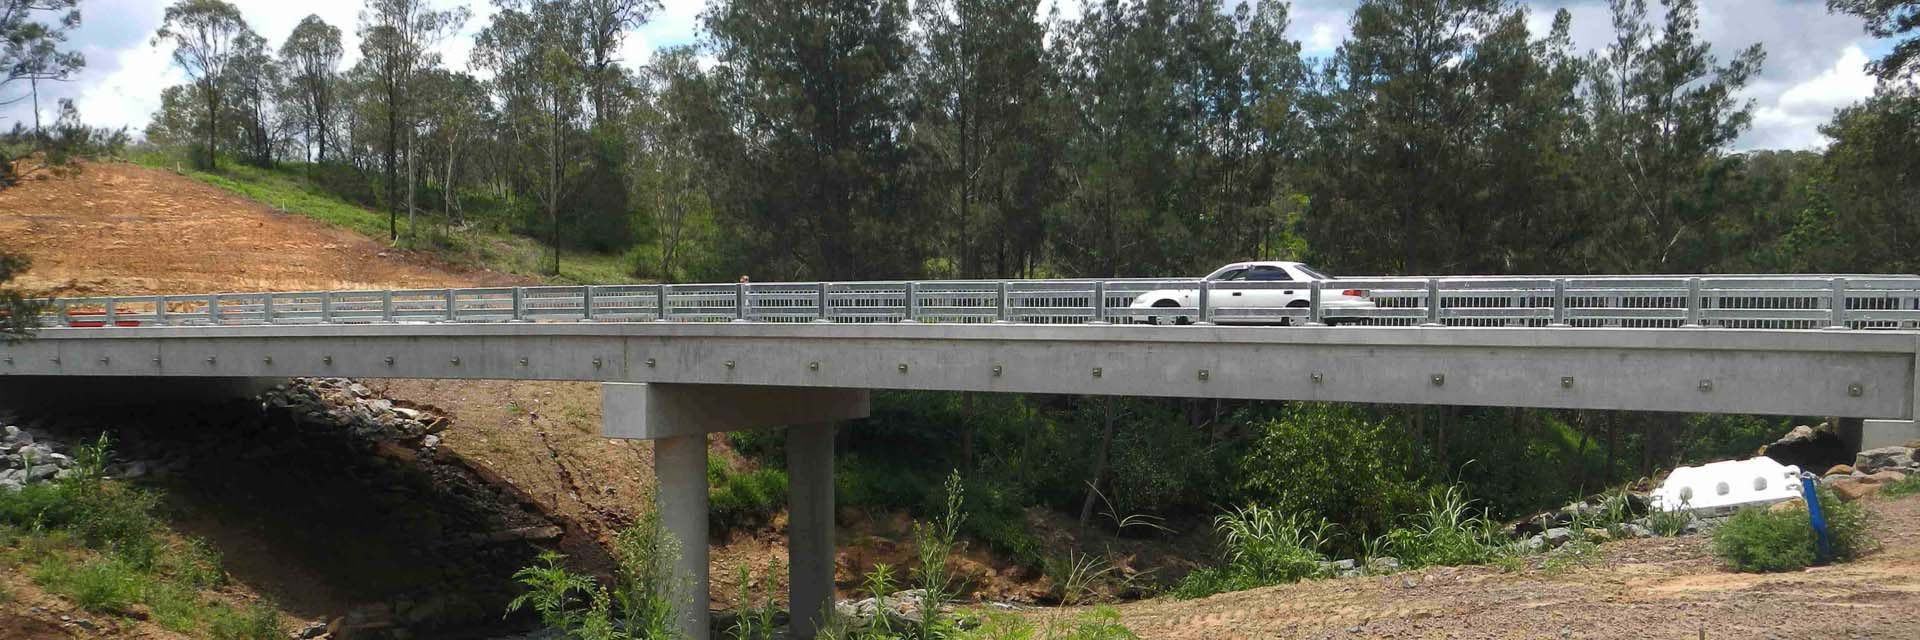 Steel Traffic Barrier & pedestrian Balustrade, Kooralbyn Bridge, Kooralbyn.